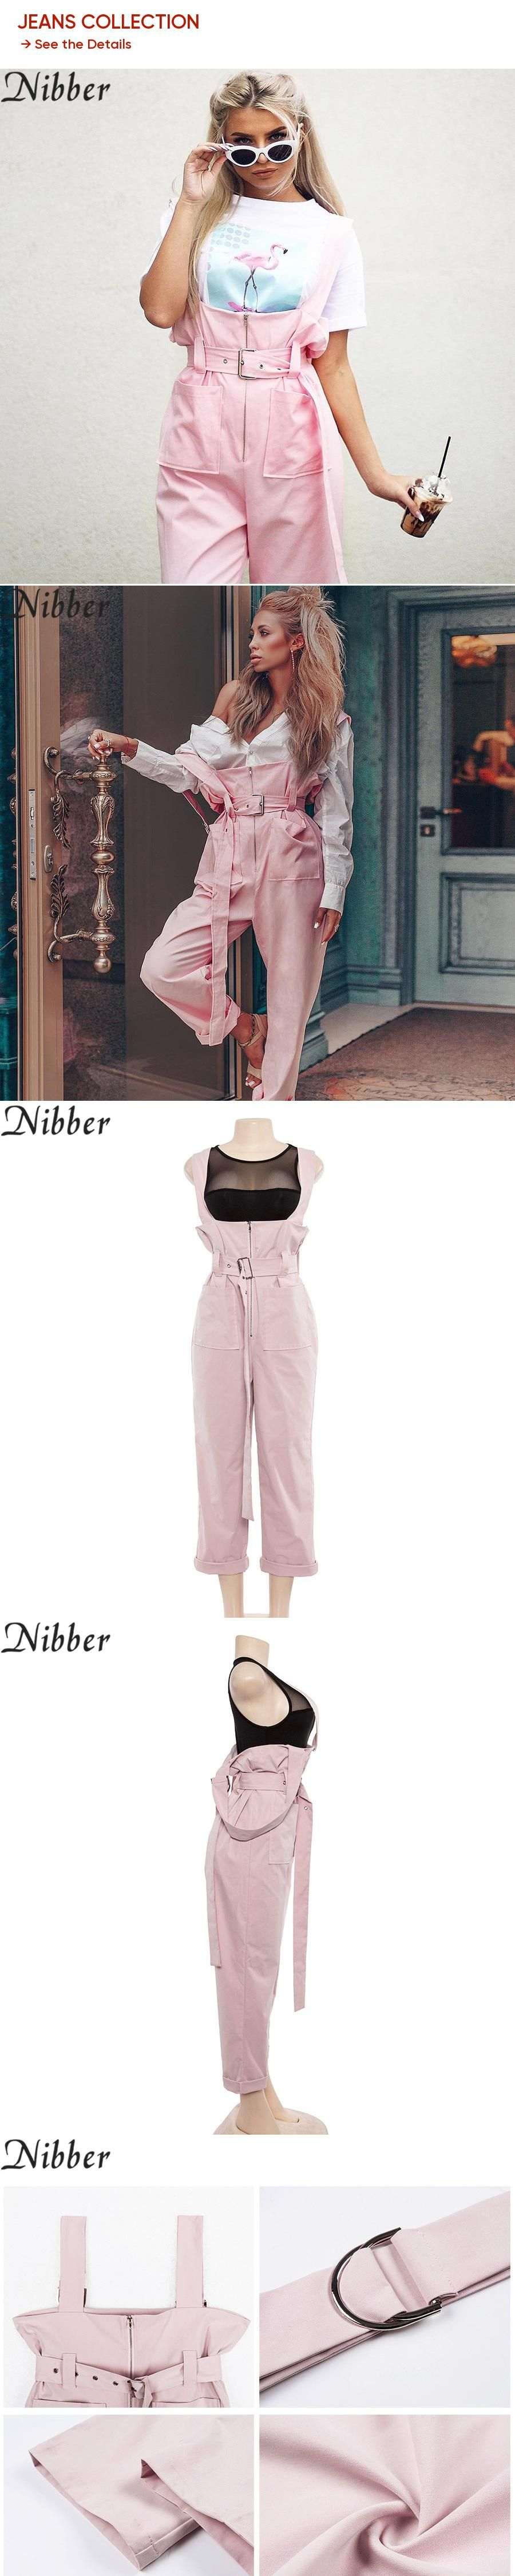 Nibber Brief Solid Women Jumpsuits Slim Strap Adjust Rompers Casual Big Pocket Denim Overalls Fashion Candy Color Jean Jumpsuit Bottoms